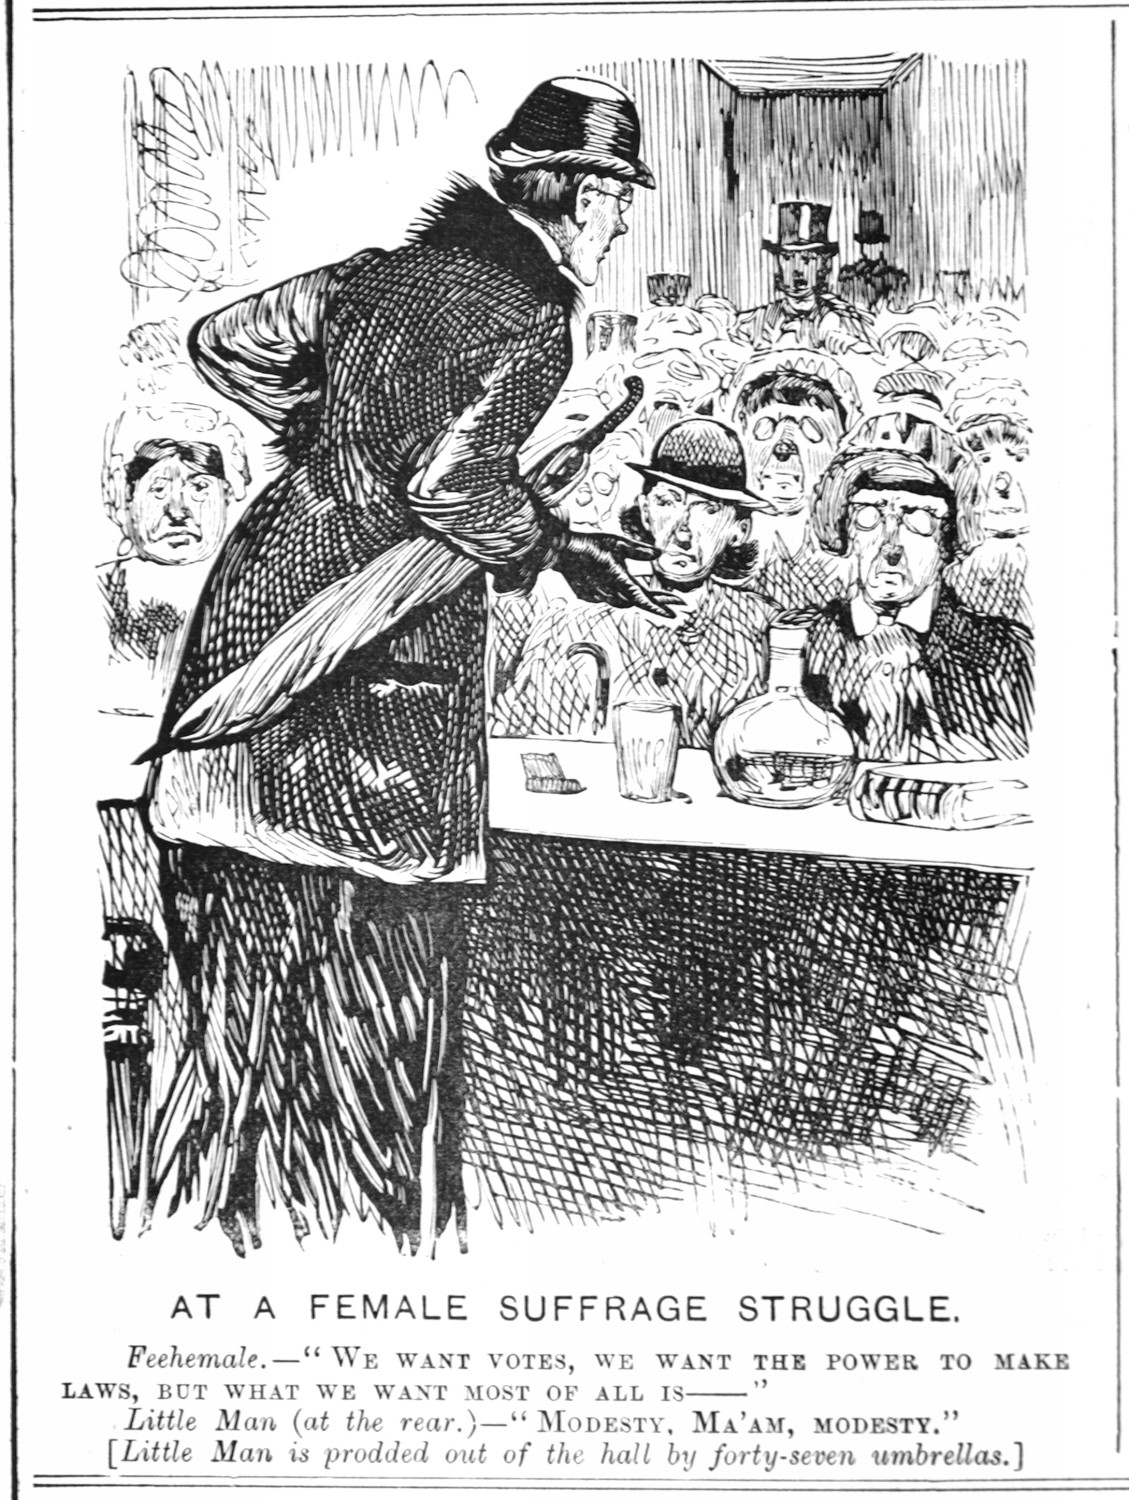 1884-07-03 Melb Punch p8 Female Suffrage Struggle